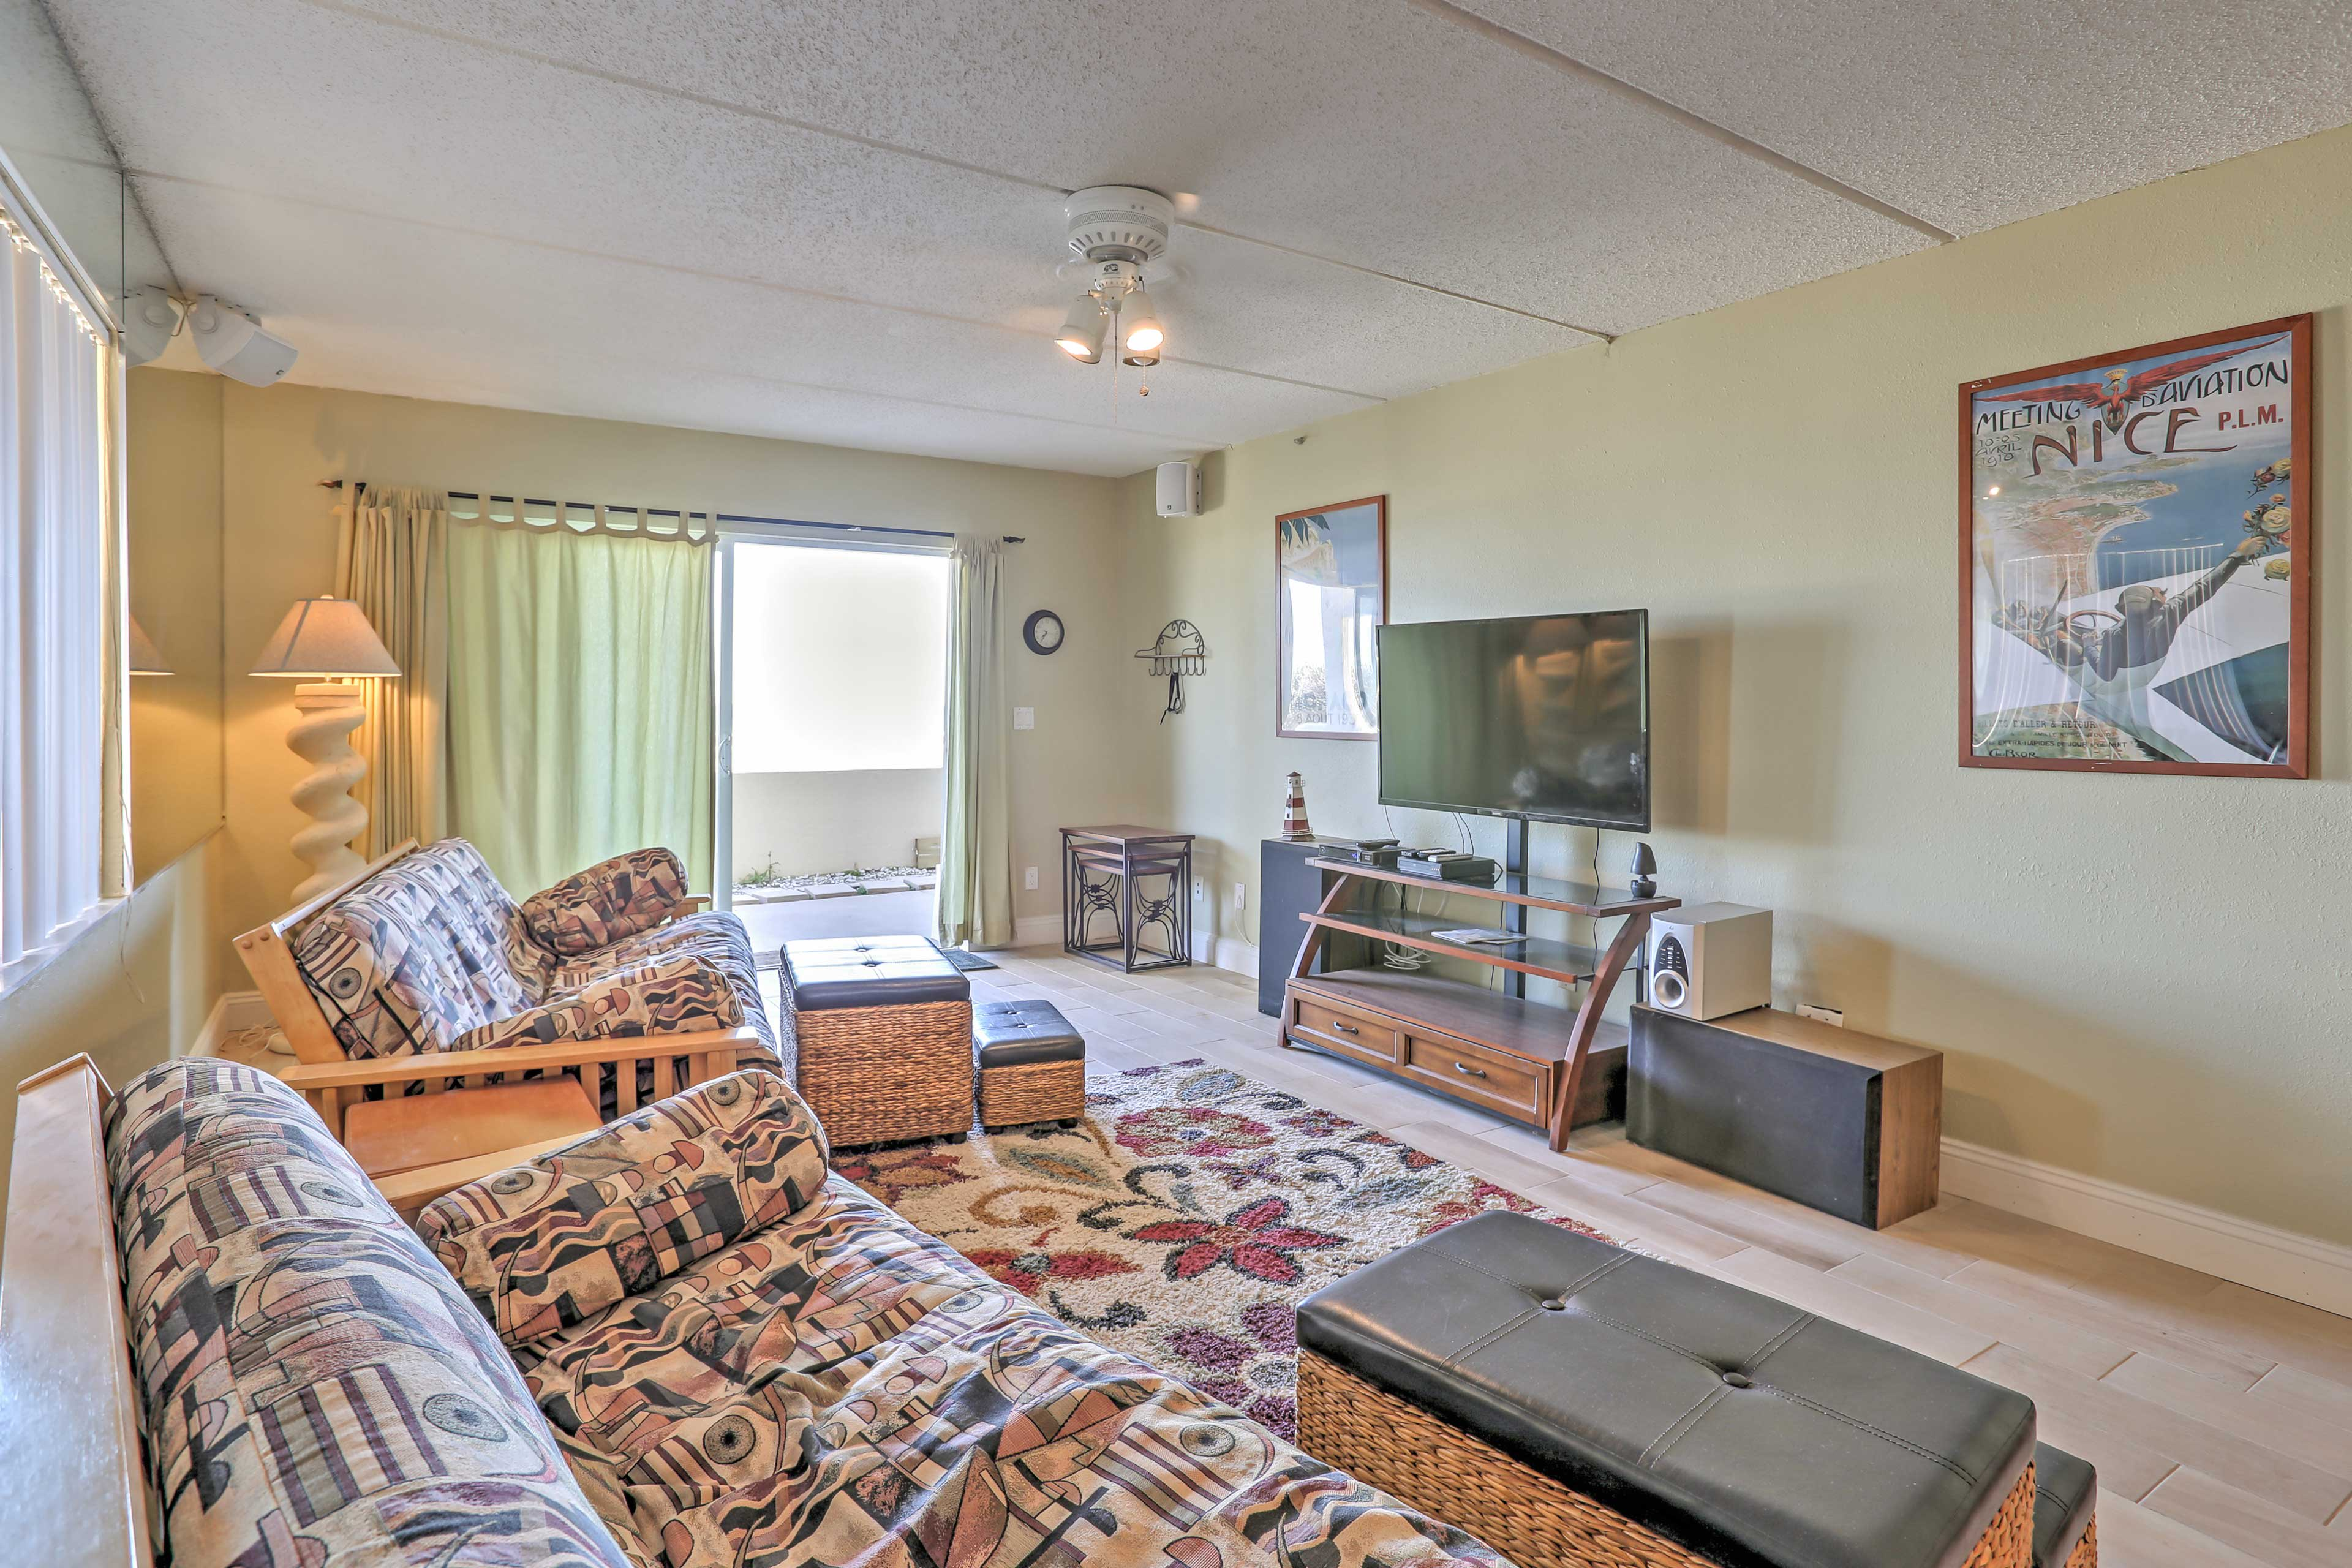 Looking for some fresh air? Open the sliding glass doors out to the patio as you relax in the living room.